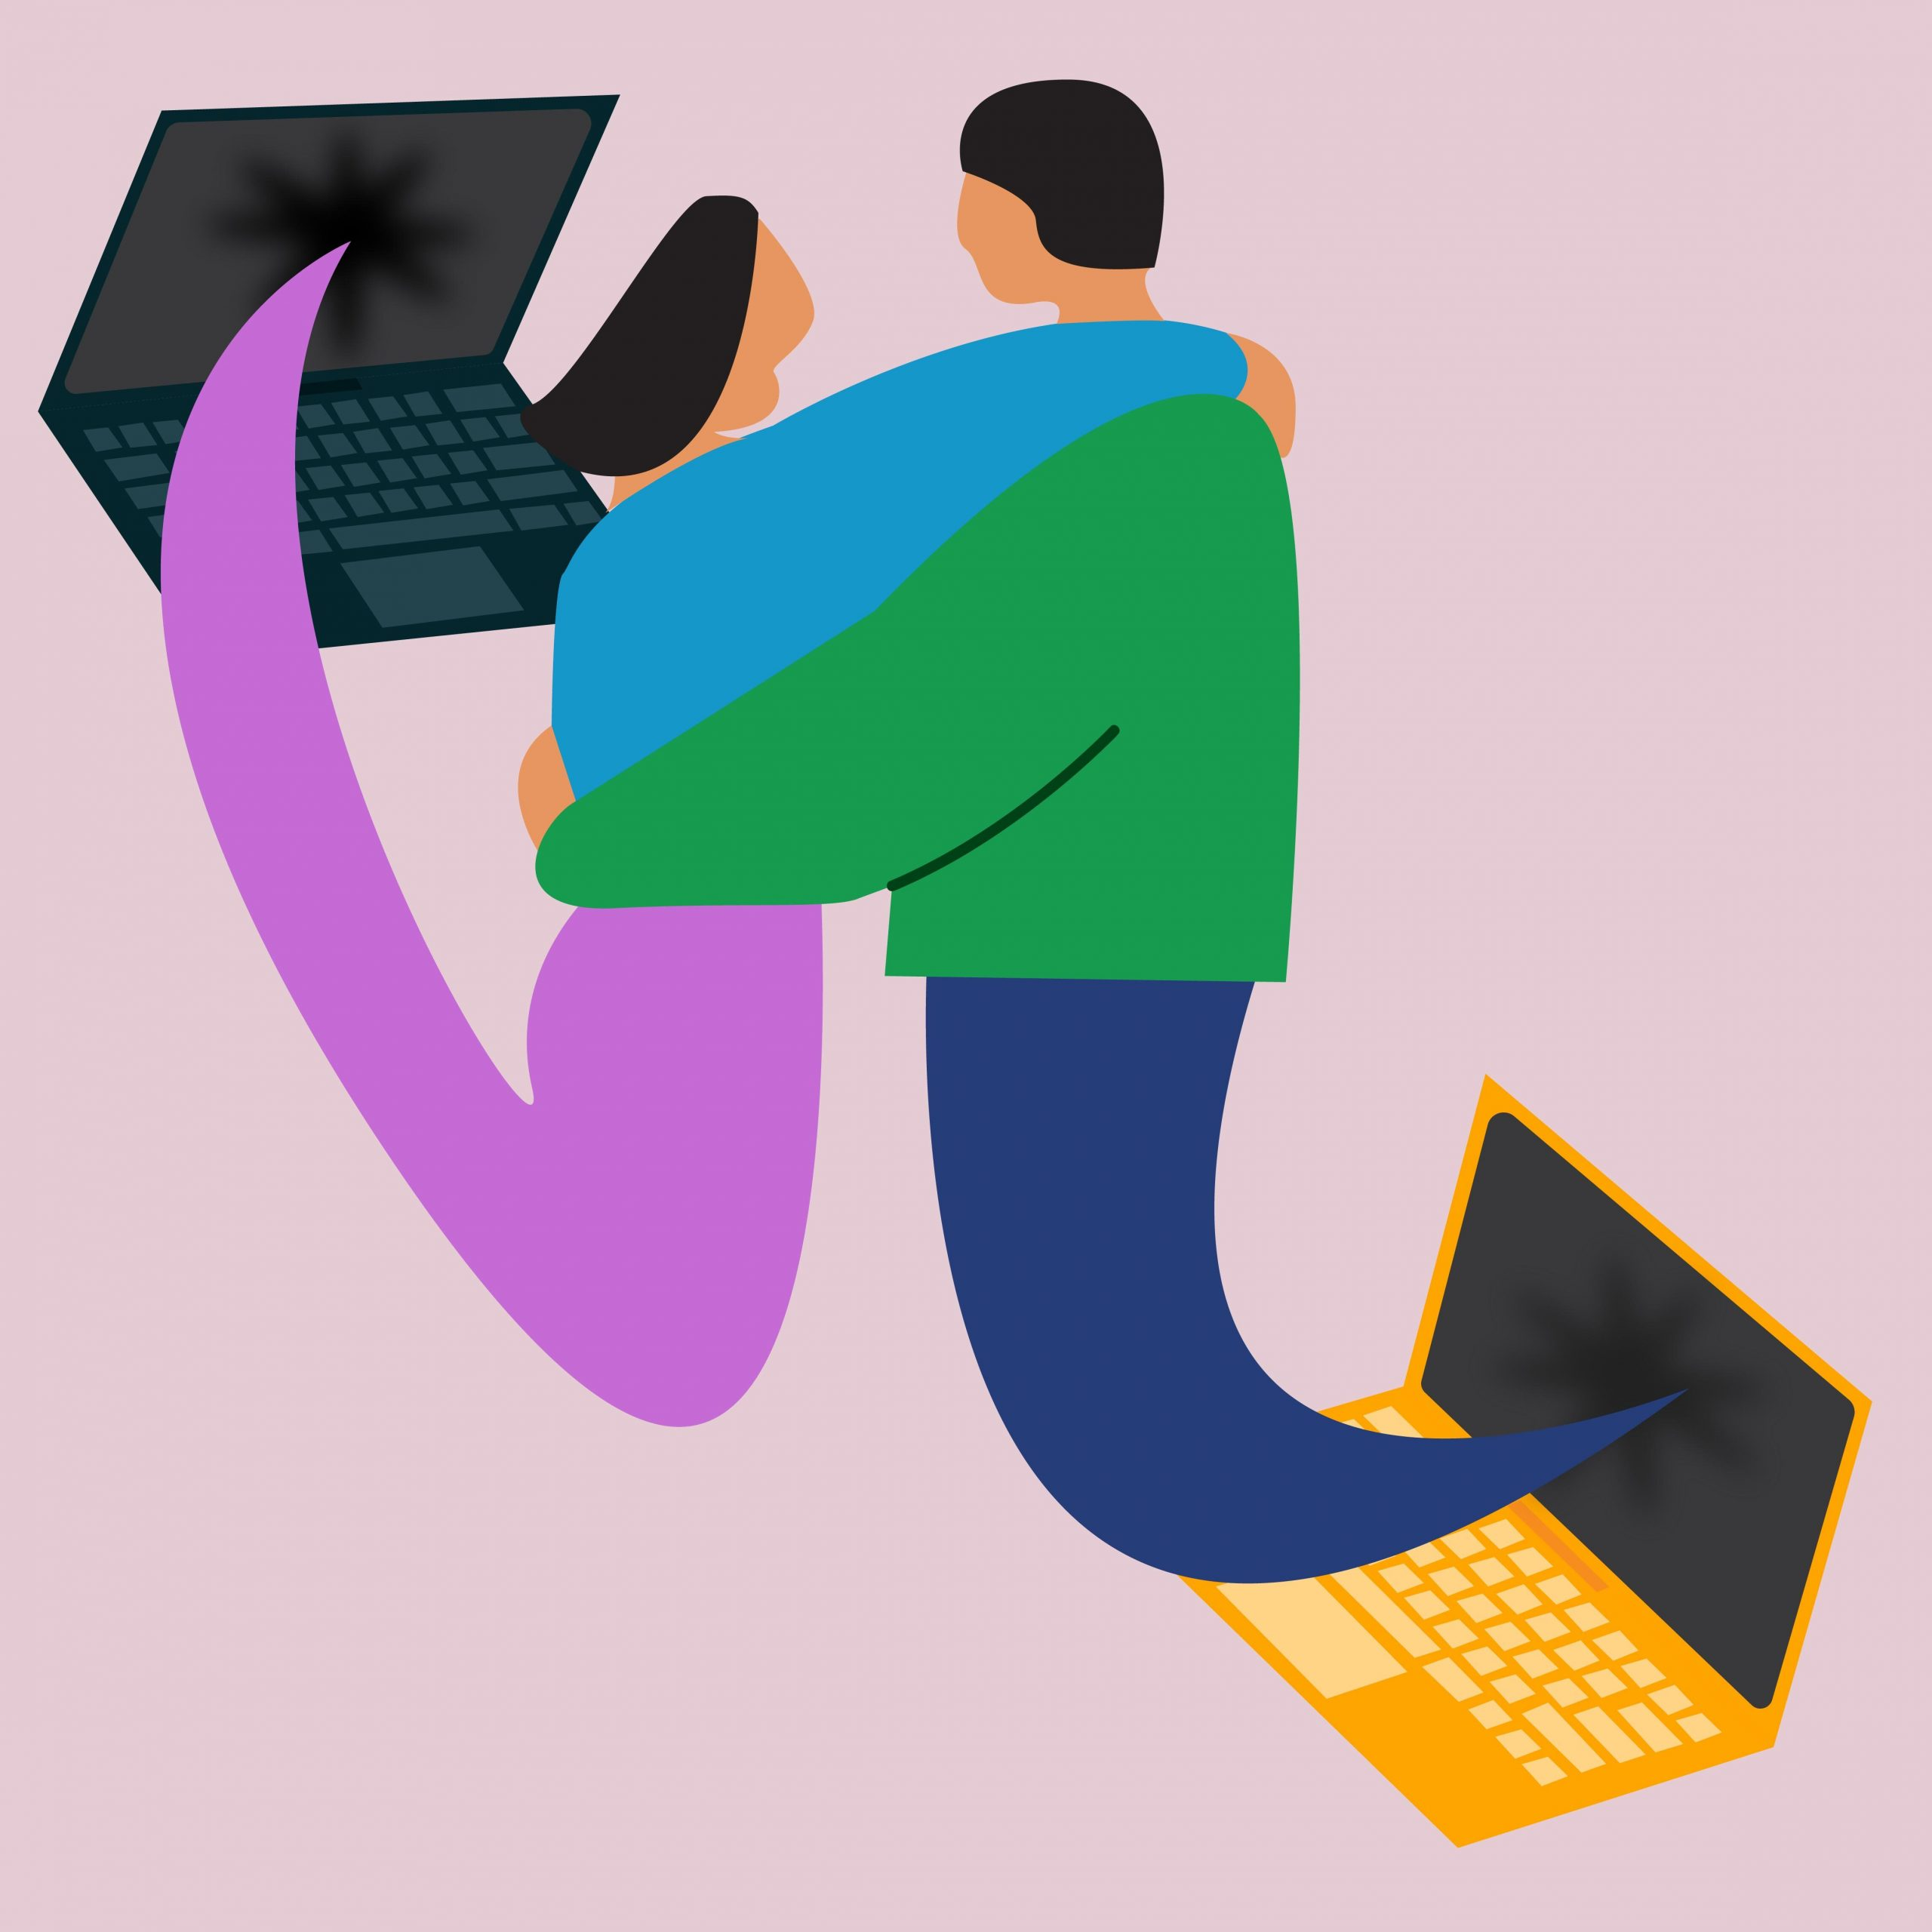 Illustration by Celina Koops of two friends emerging from the screens of their laptops to share a hug.